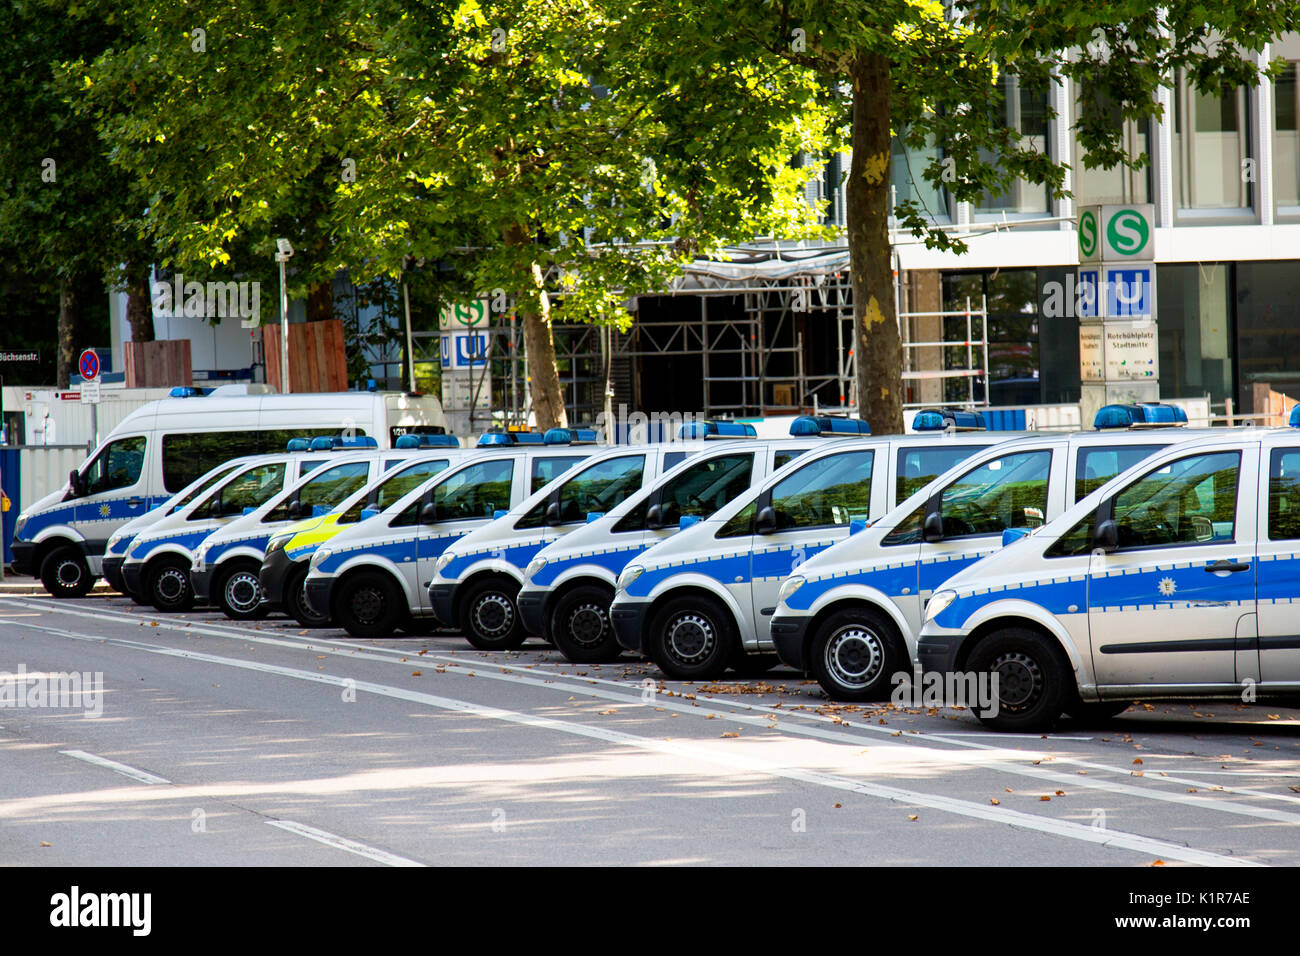 A line of Mercedes police cars parked outside a place station on a street in Stuttgart, Germany, Europe Stock Photo